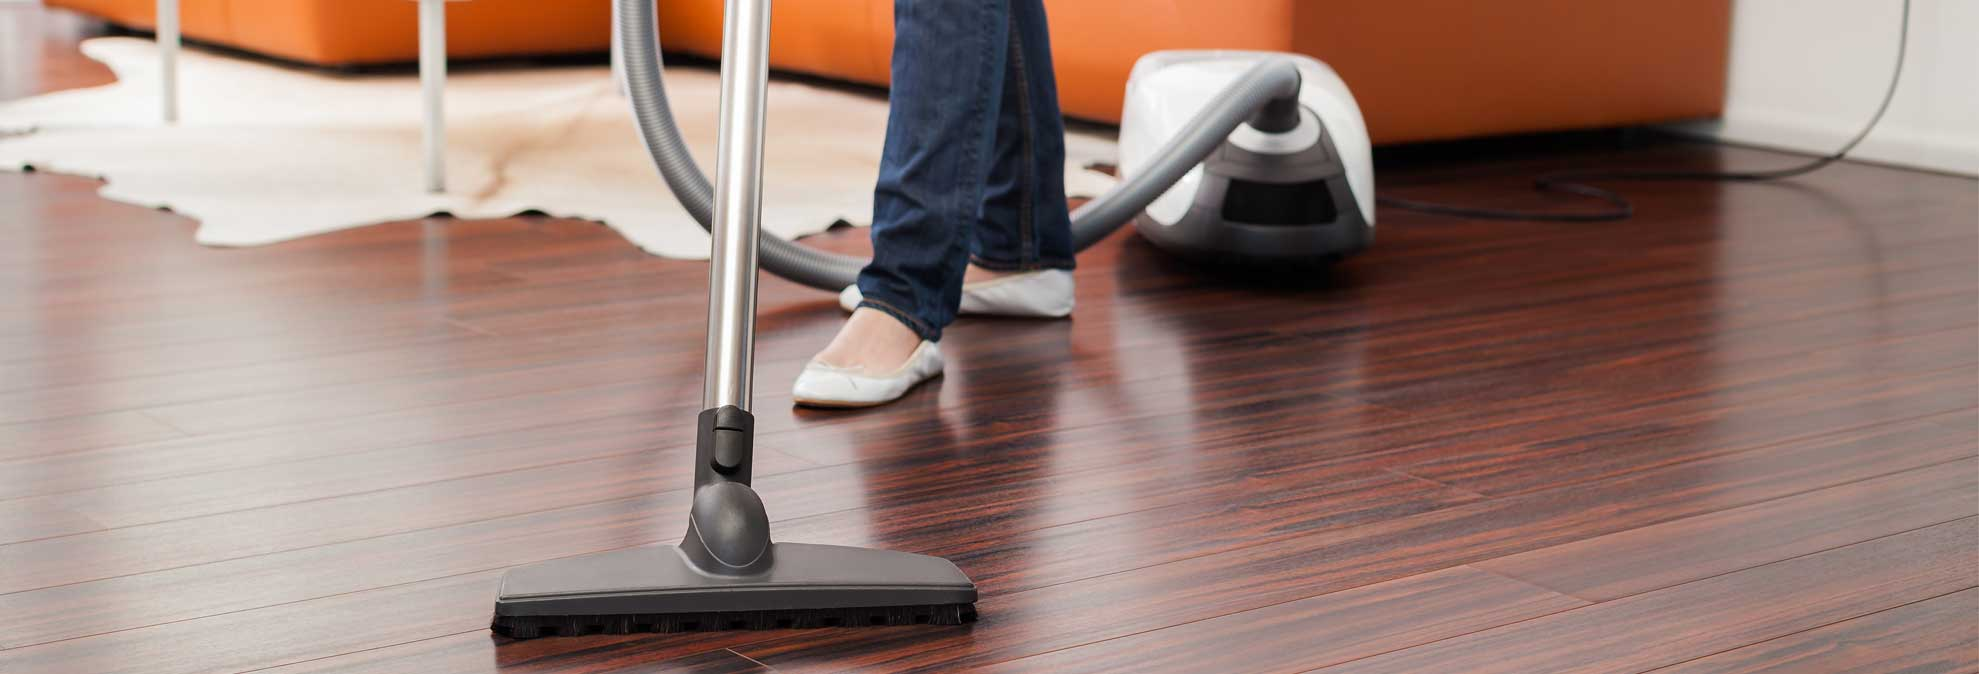 Best Canister Vacuum For Hardwood Floors soniclean bare floor pro canister vacuum cleaner Best Vacuums Of 2016 Consumer Reports